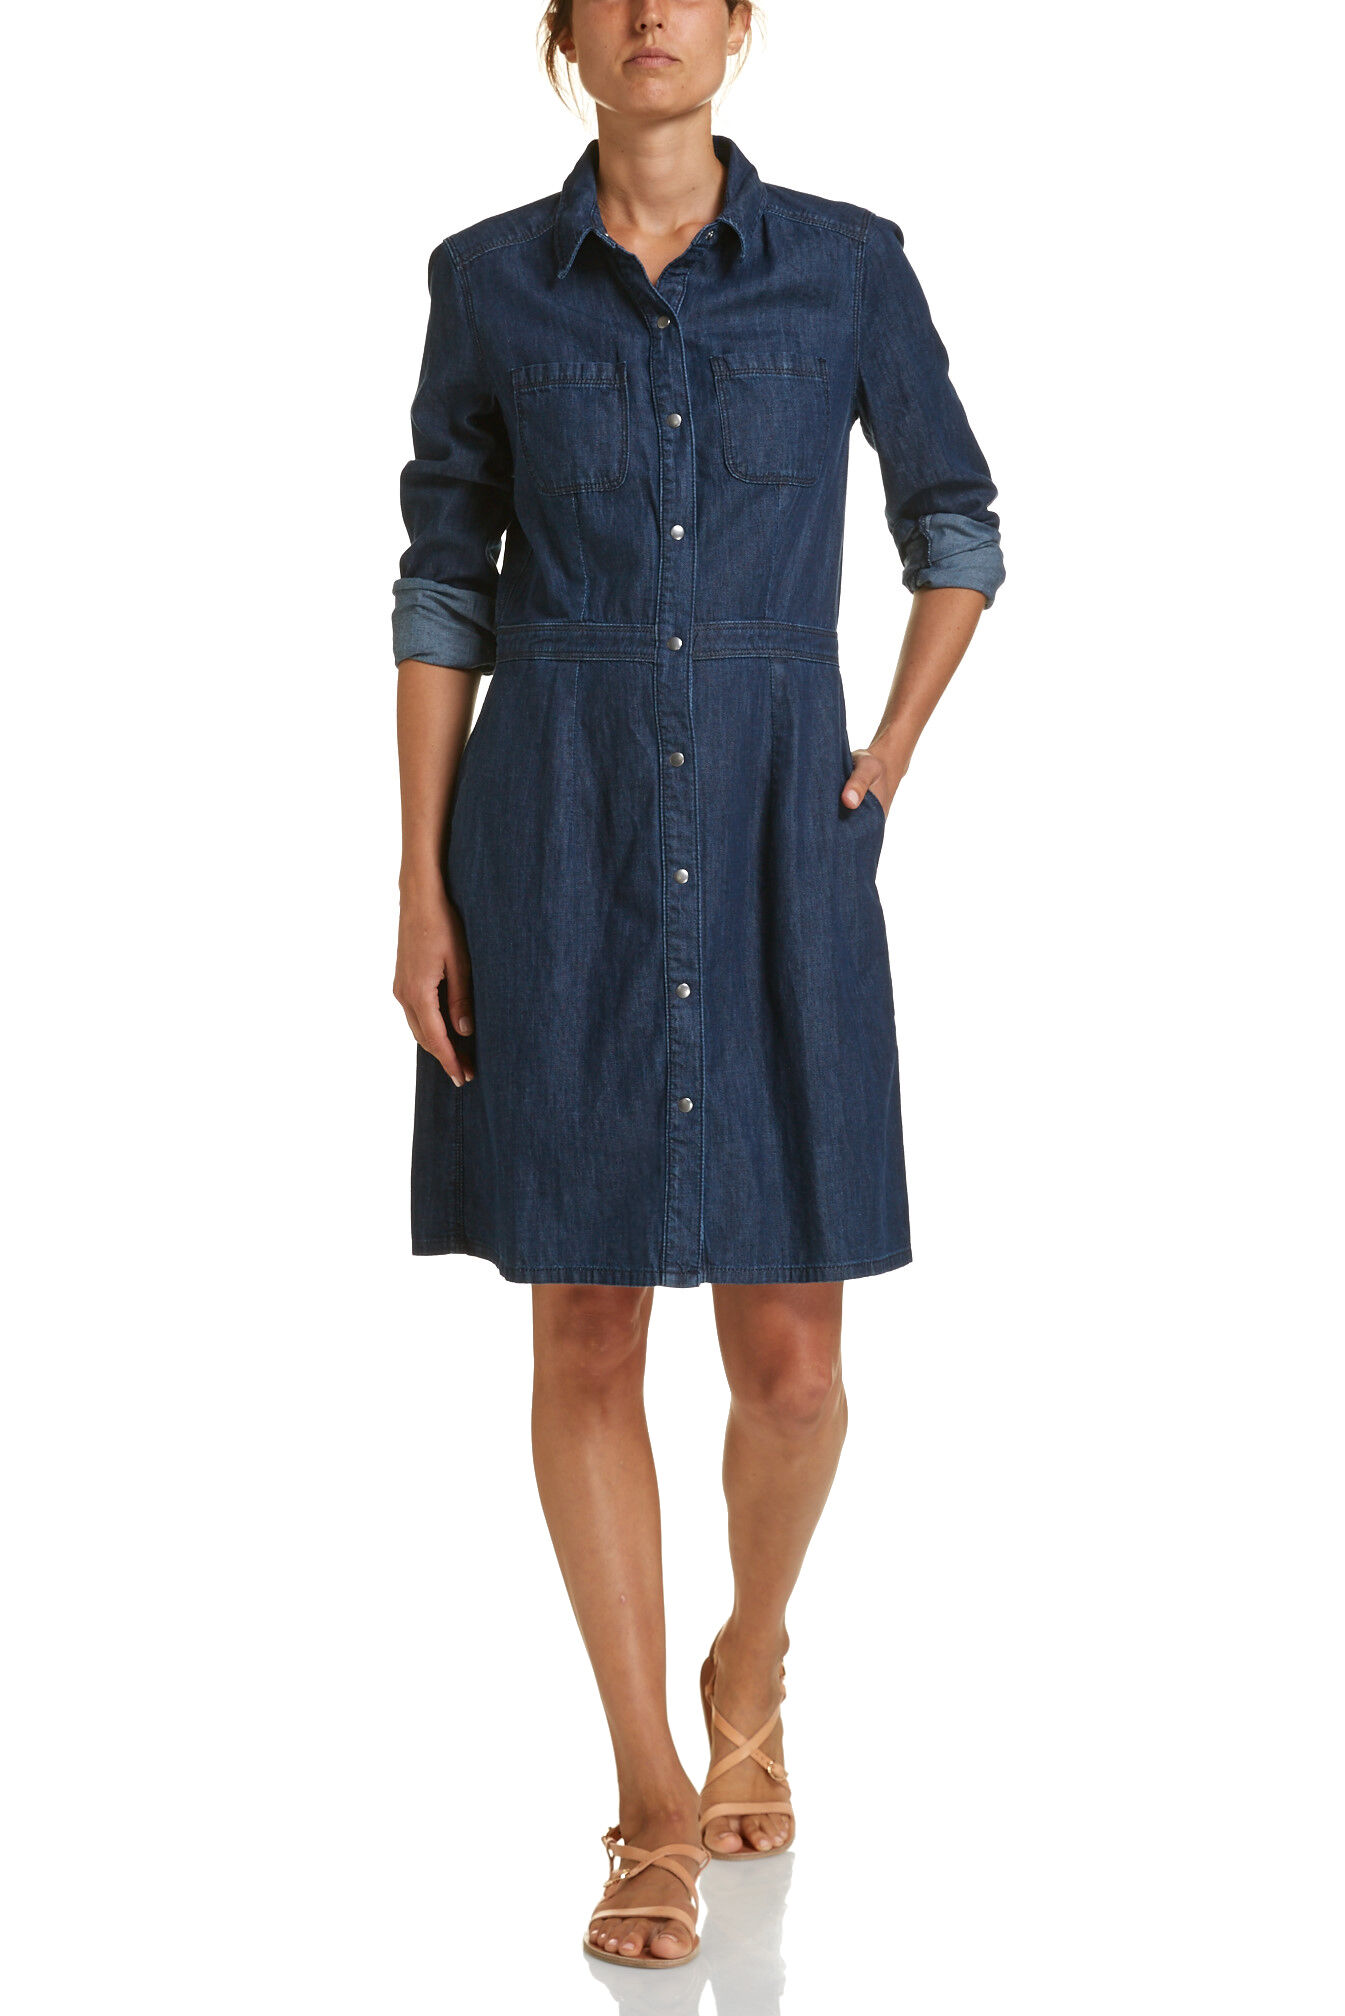 NEW JAG WOMENS Denim Snap Dress Dresses | eBay